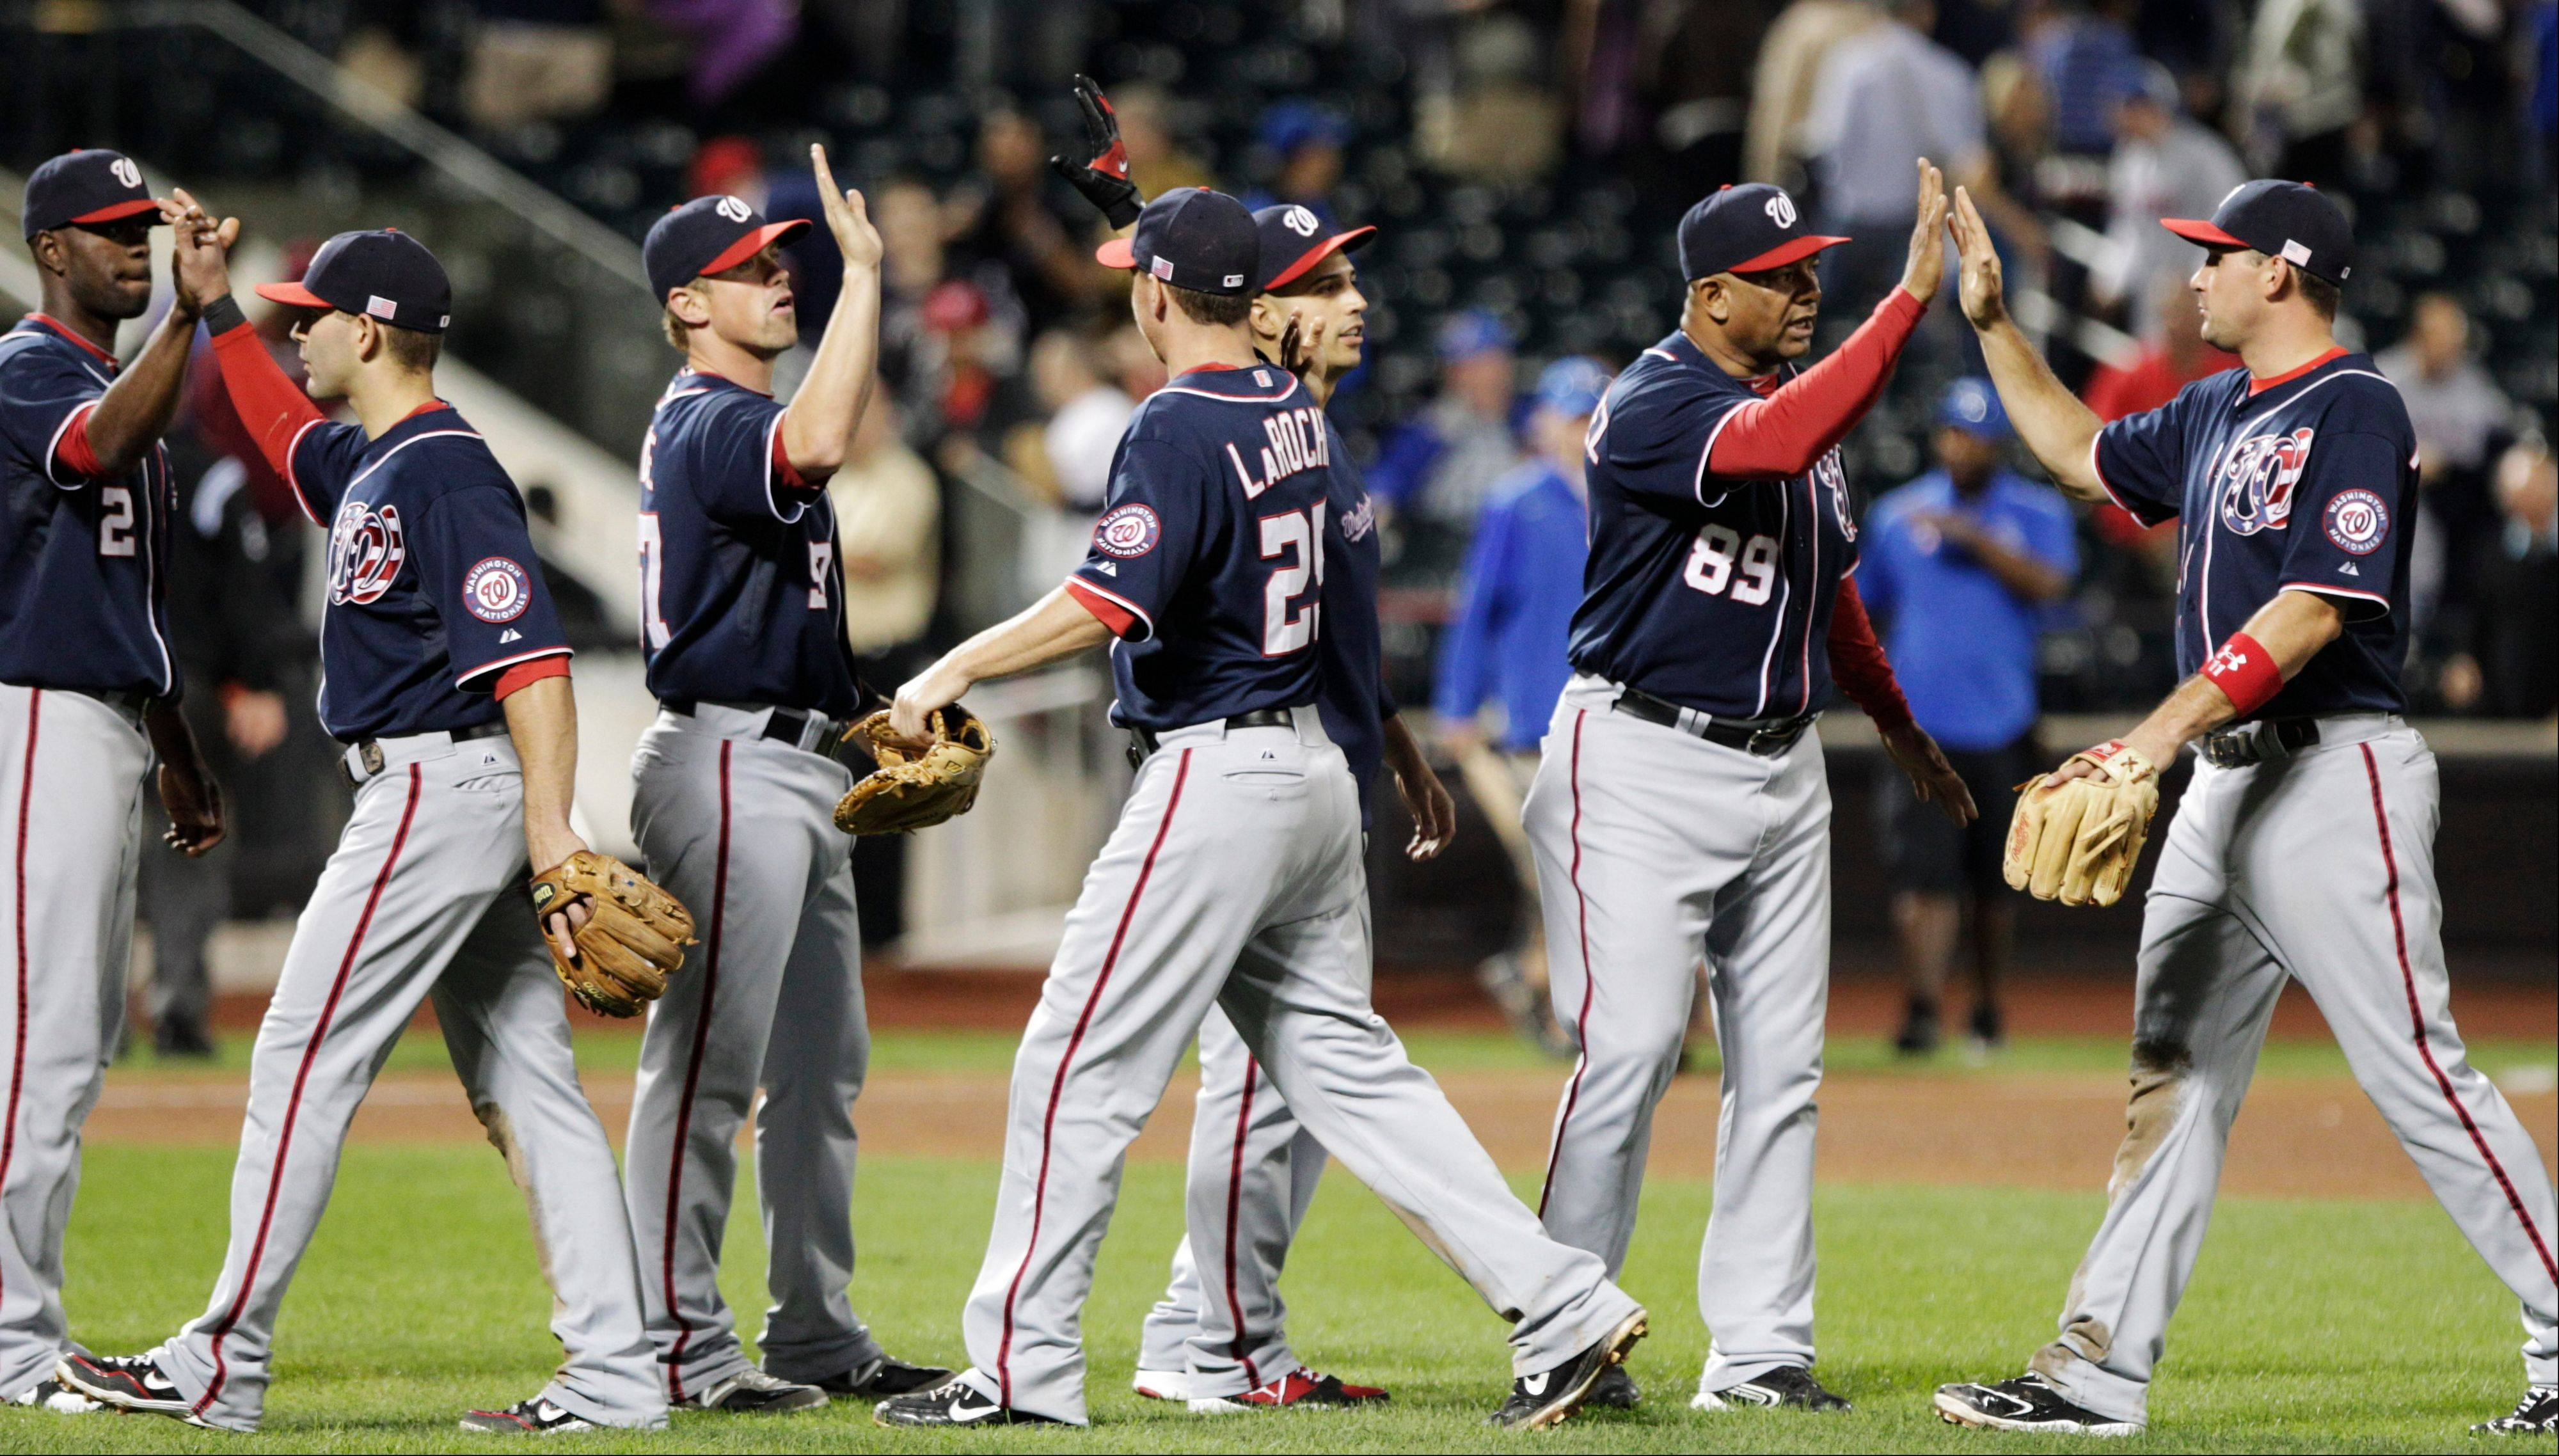 The Nationals celebrate their win against the Mets on Tuesday in New York.